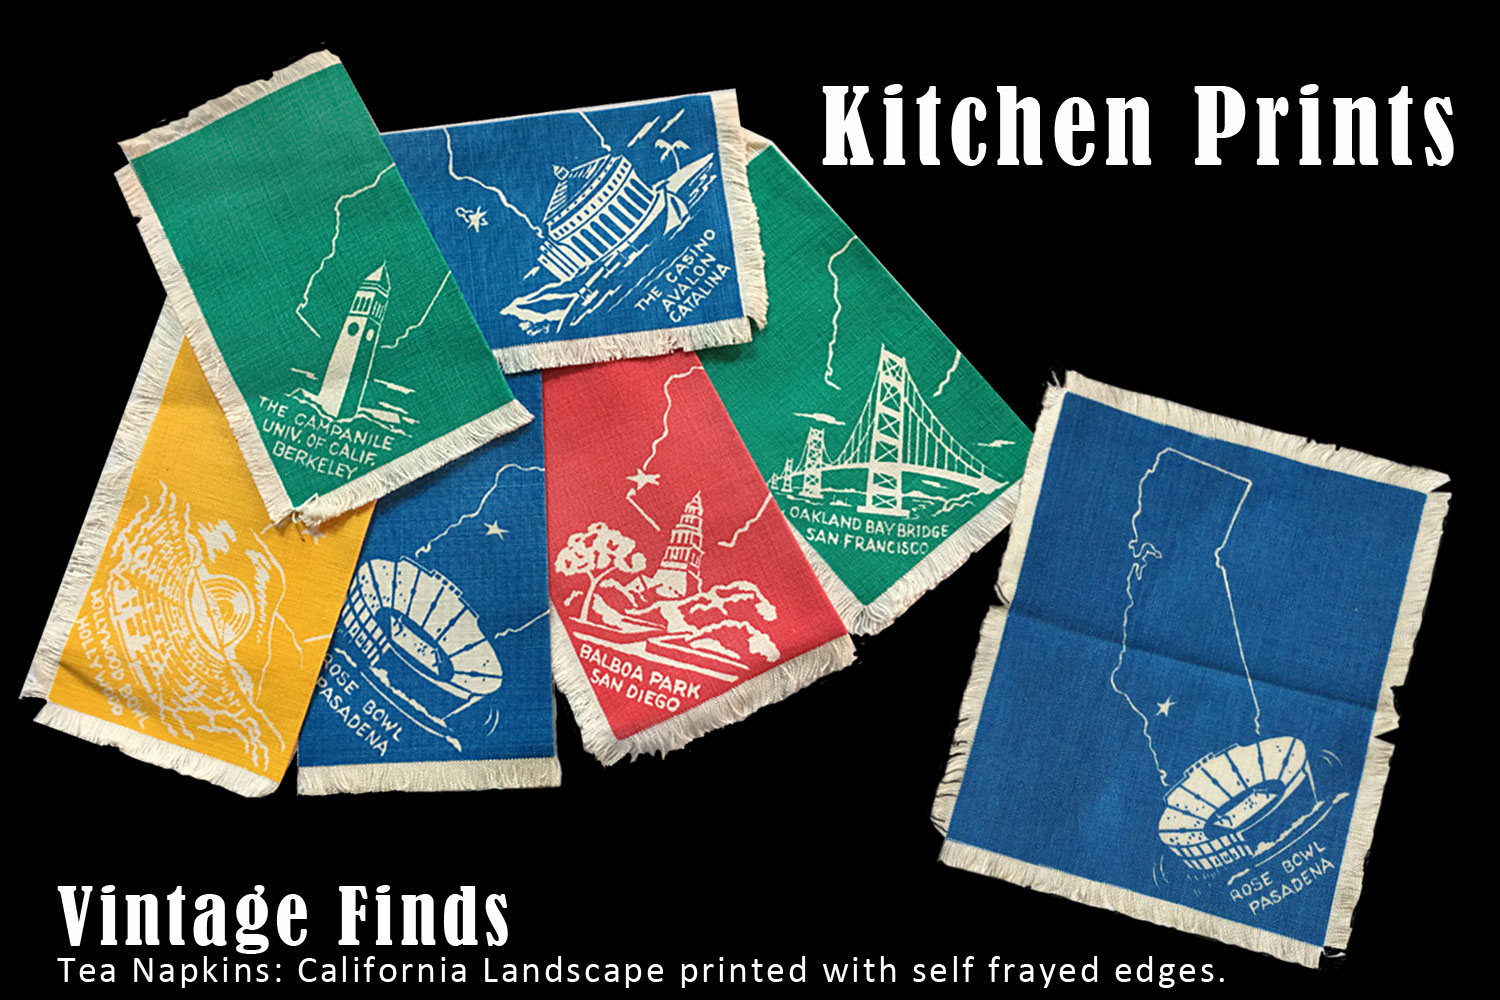 Vintage Kitchen Prints